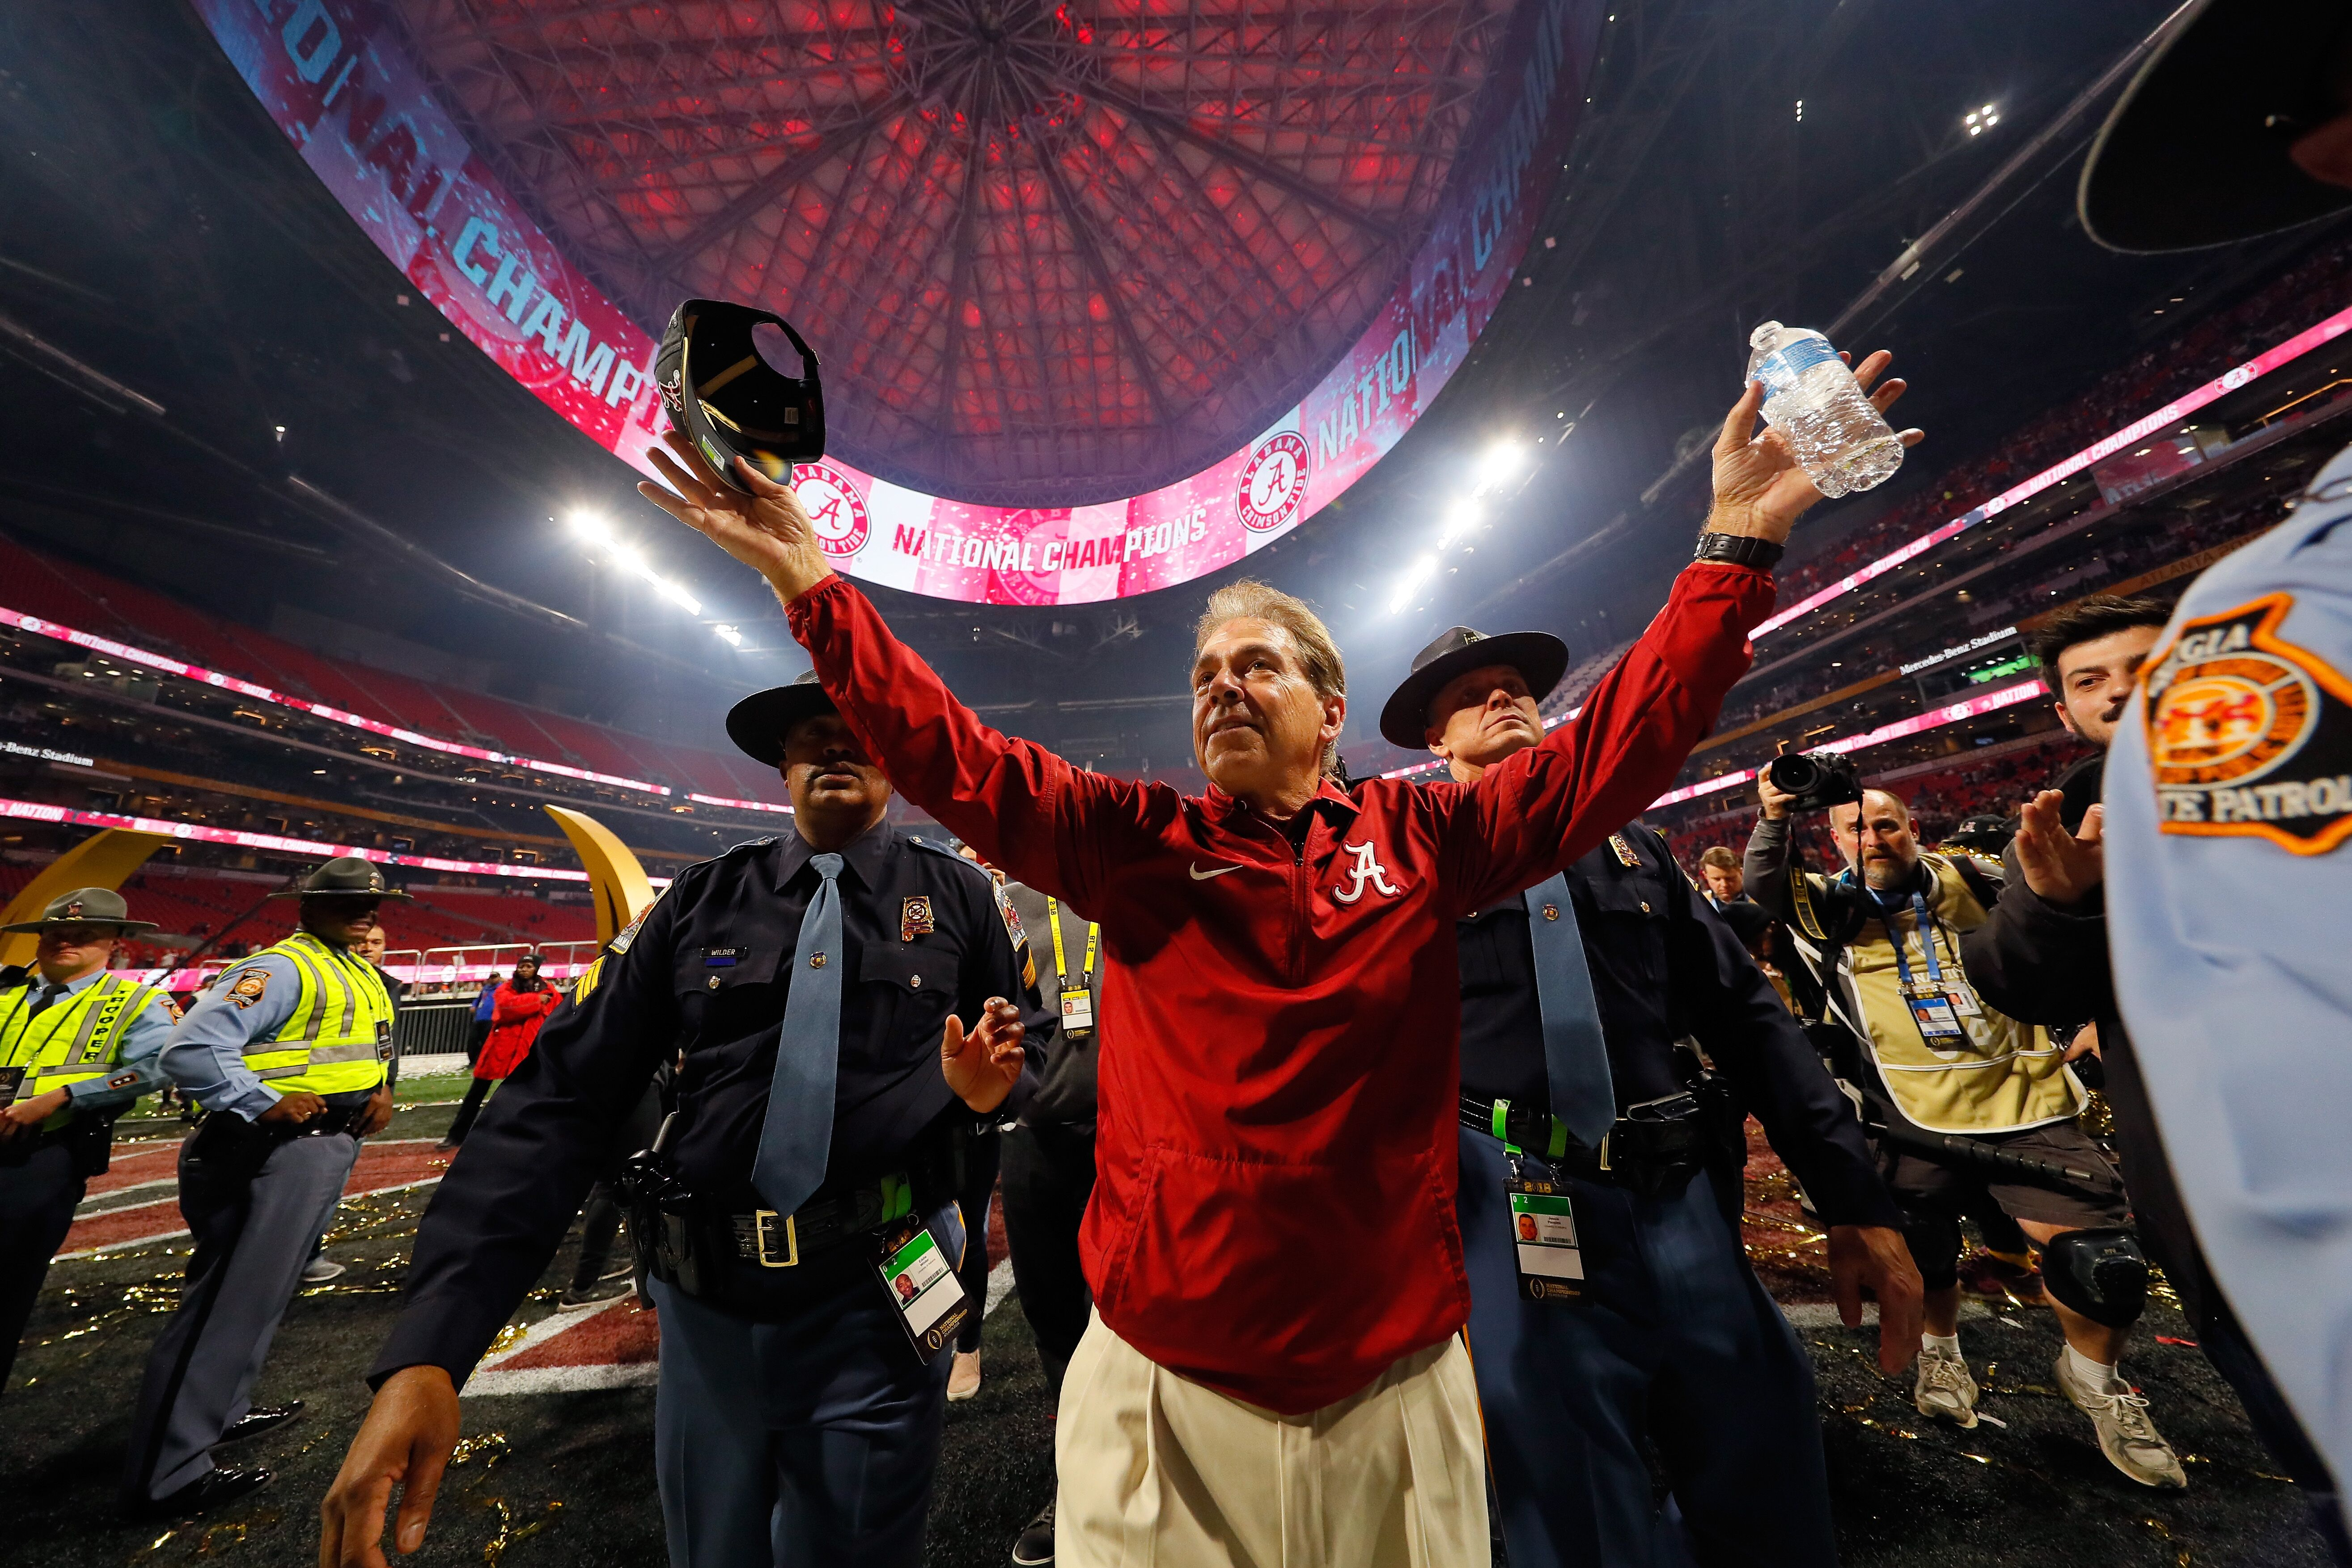 902792984-cfp-national-championship-presented-by-at.jpg